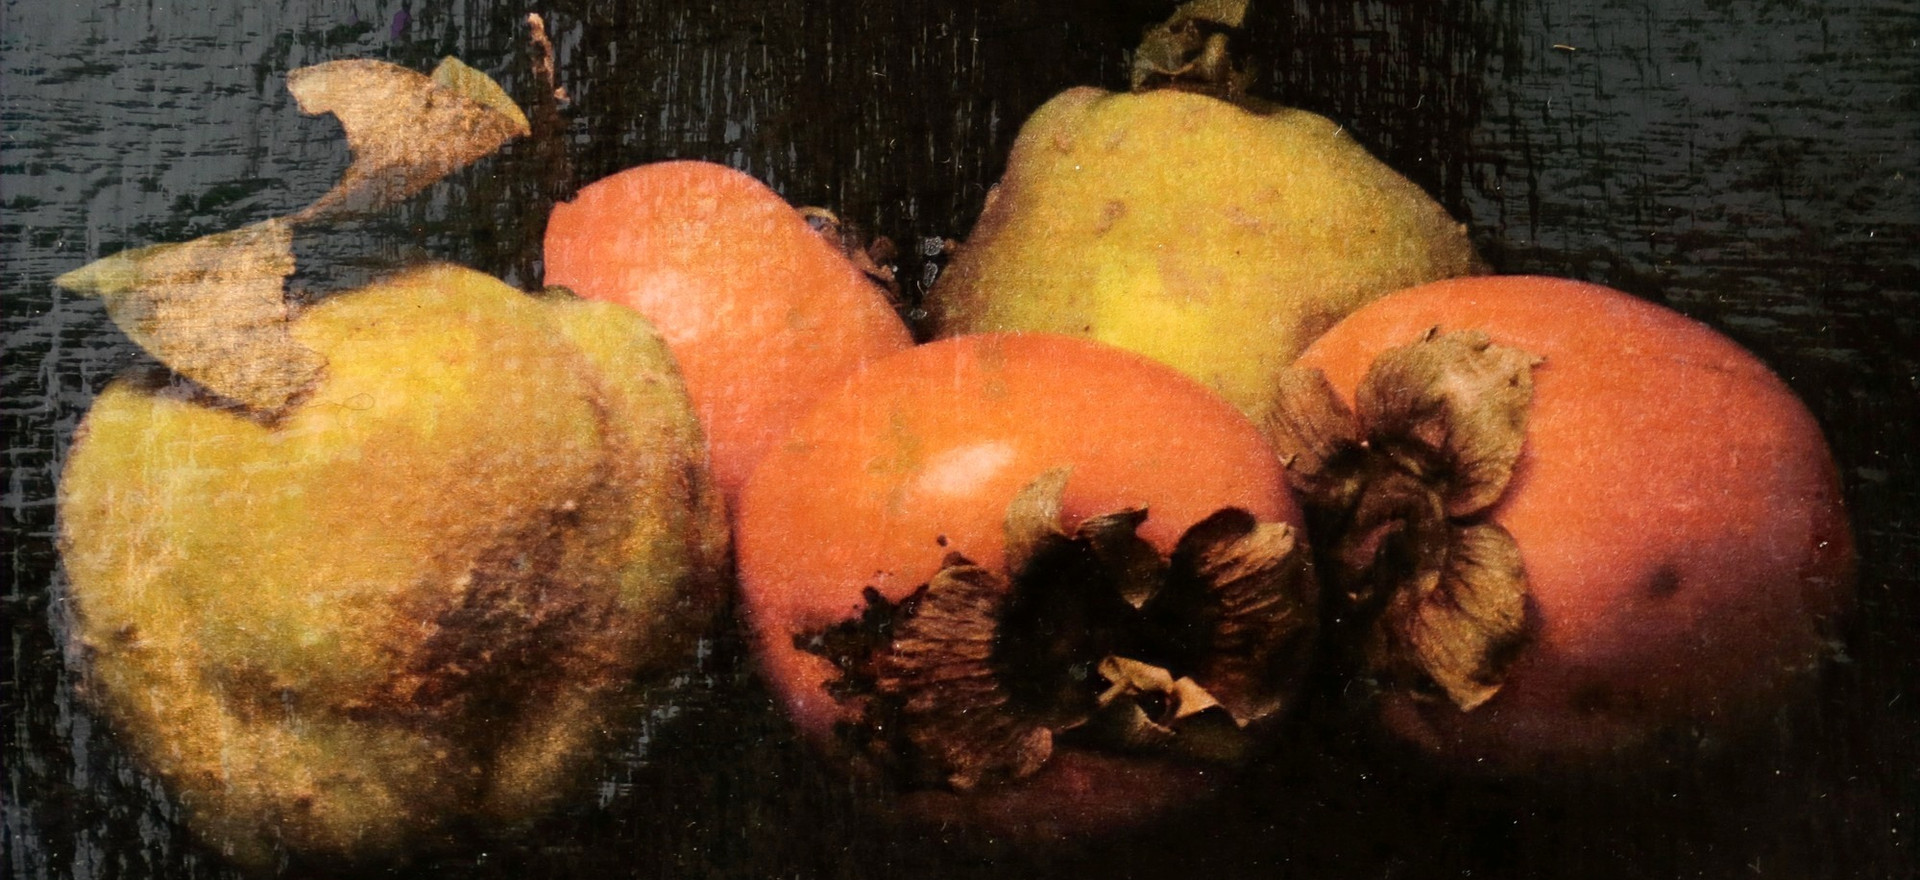 Quince and Persimmon - image